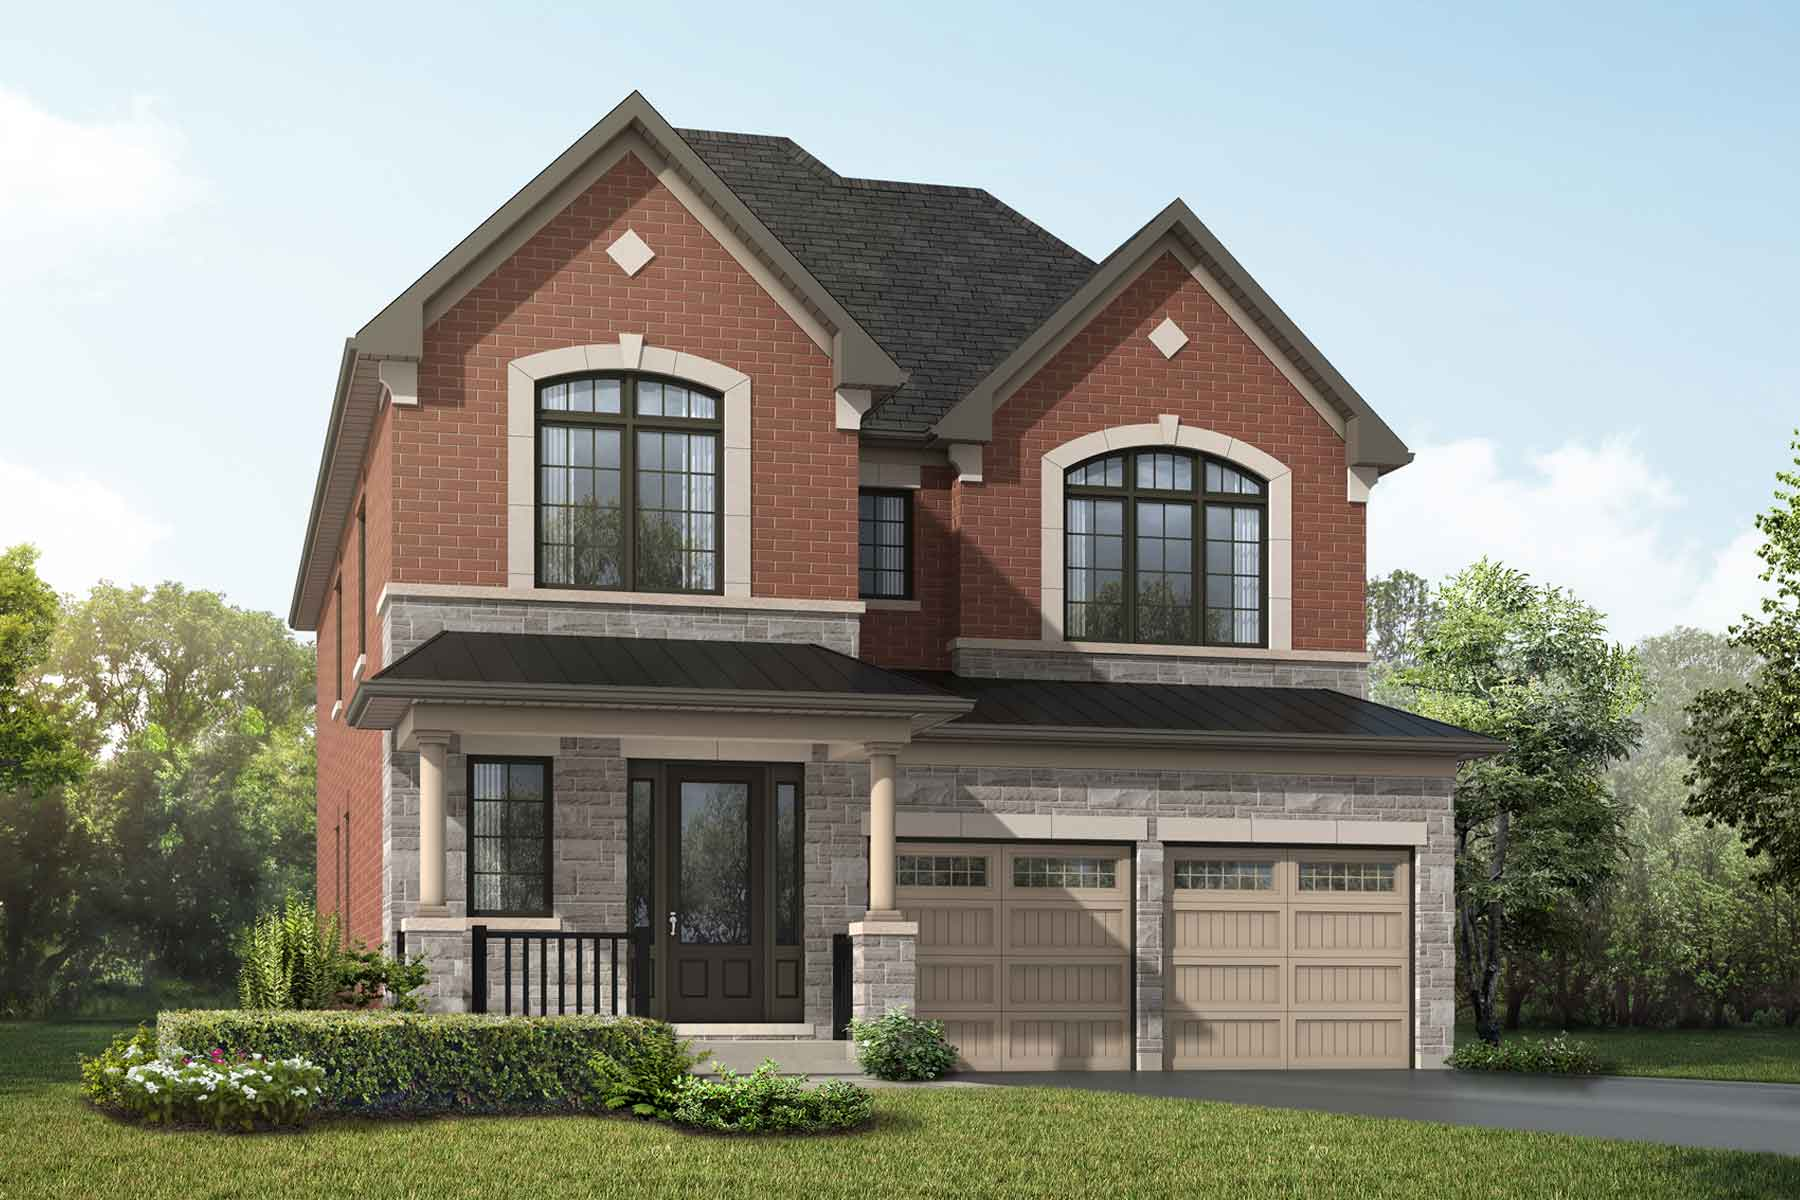 Lilac Plan englishmanor_springwater_lilac at Springwater in Markham Ontario by Mattamy Homes